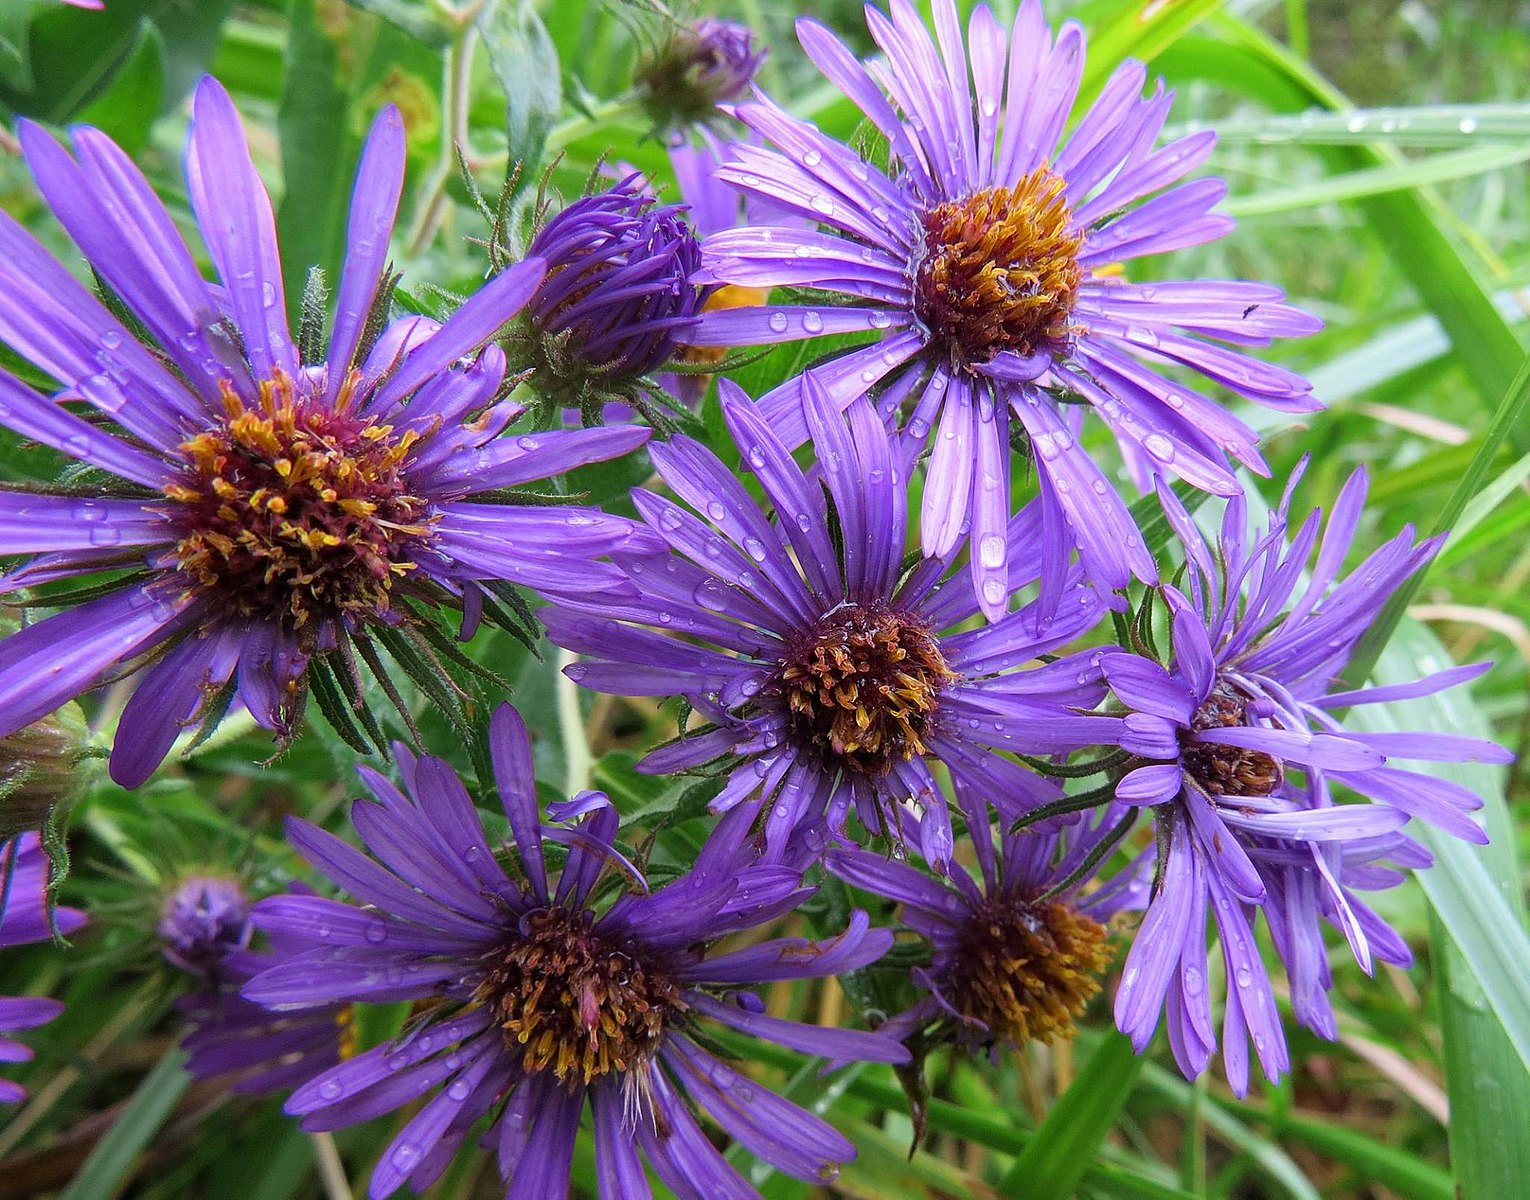 New England Asters are used to treat nosebleeds and mental disorders. (Image: Jessica Bolser/USFWS via Flickr CC BY 2.0 )